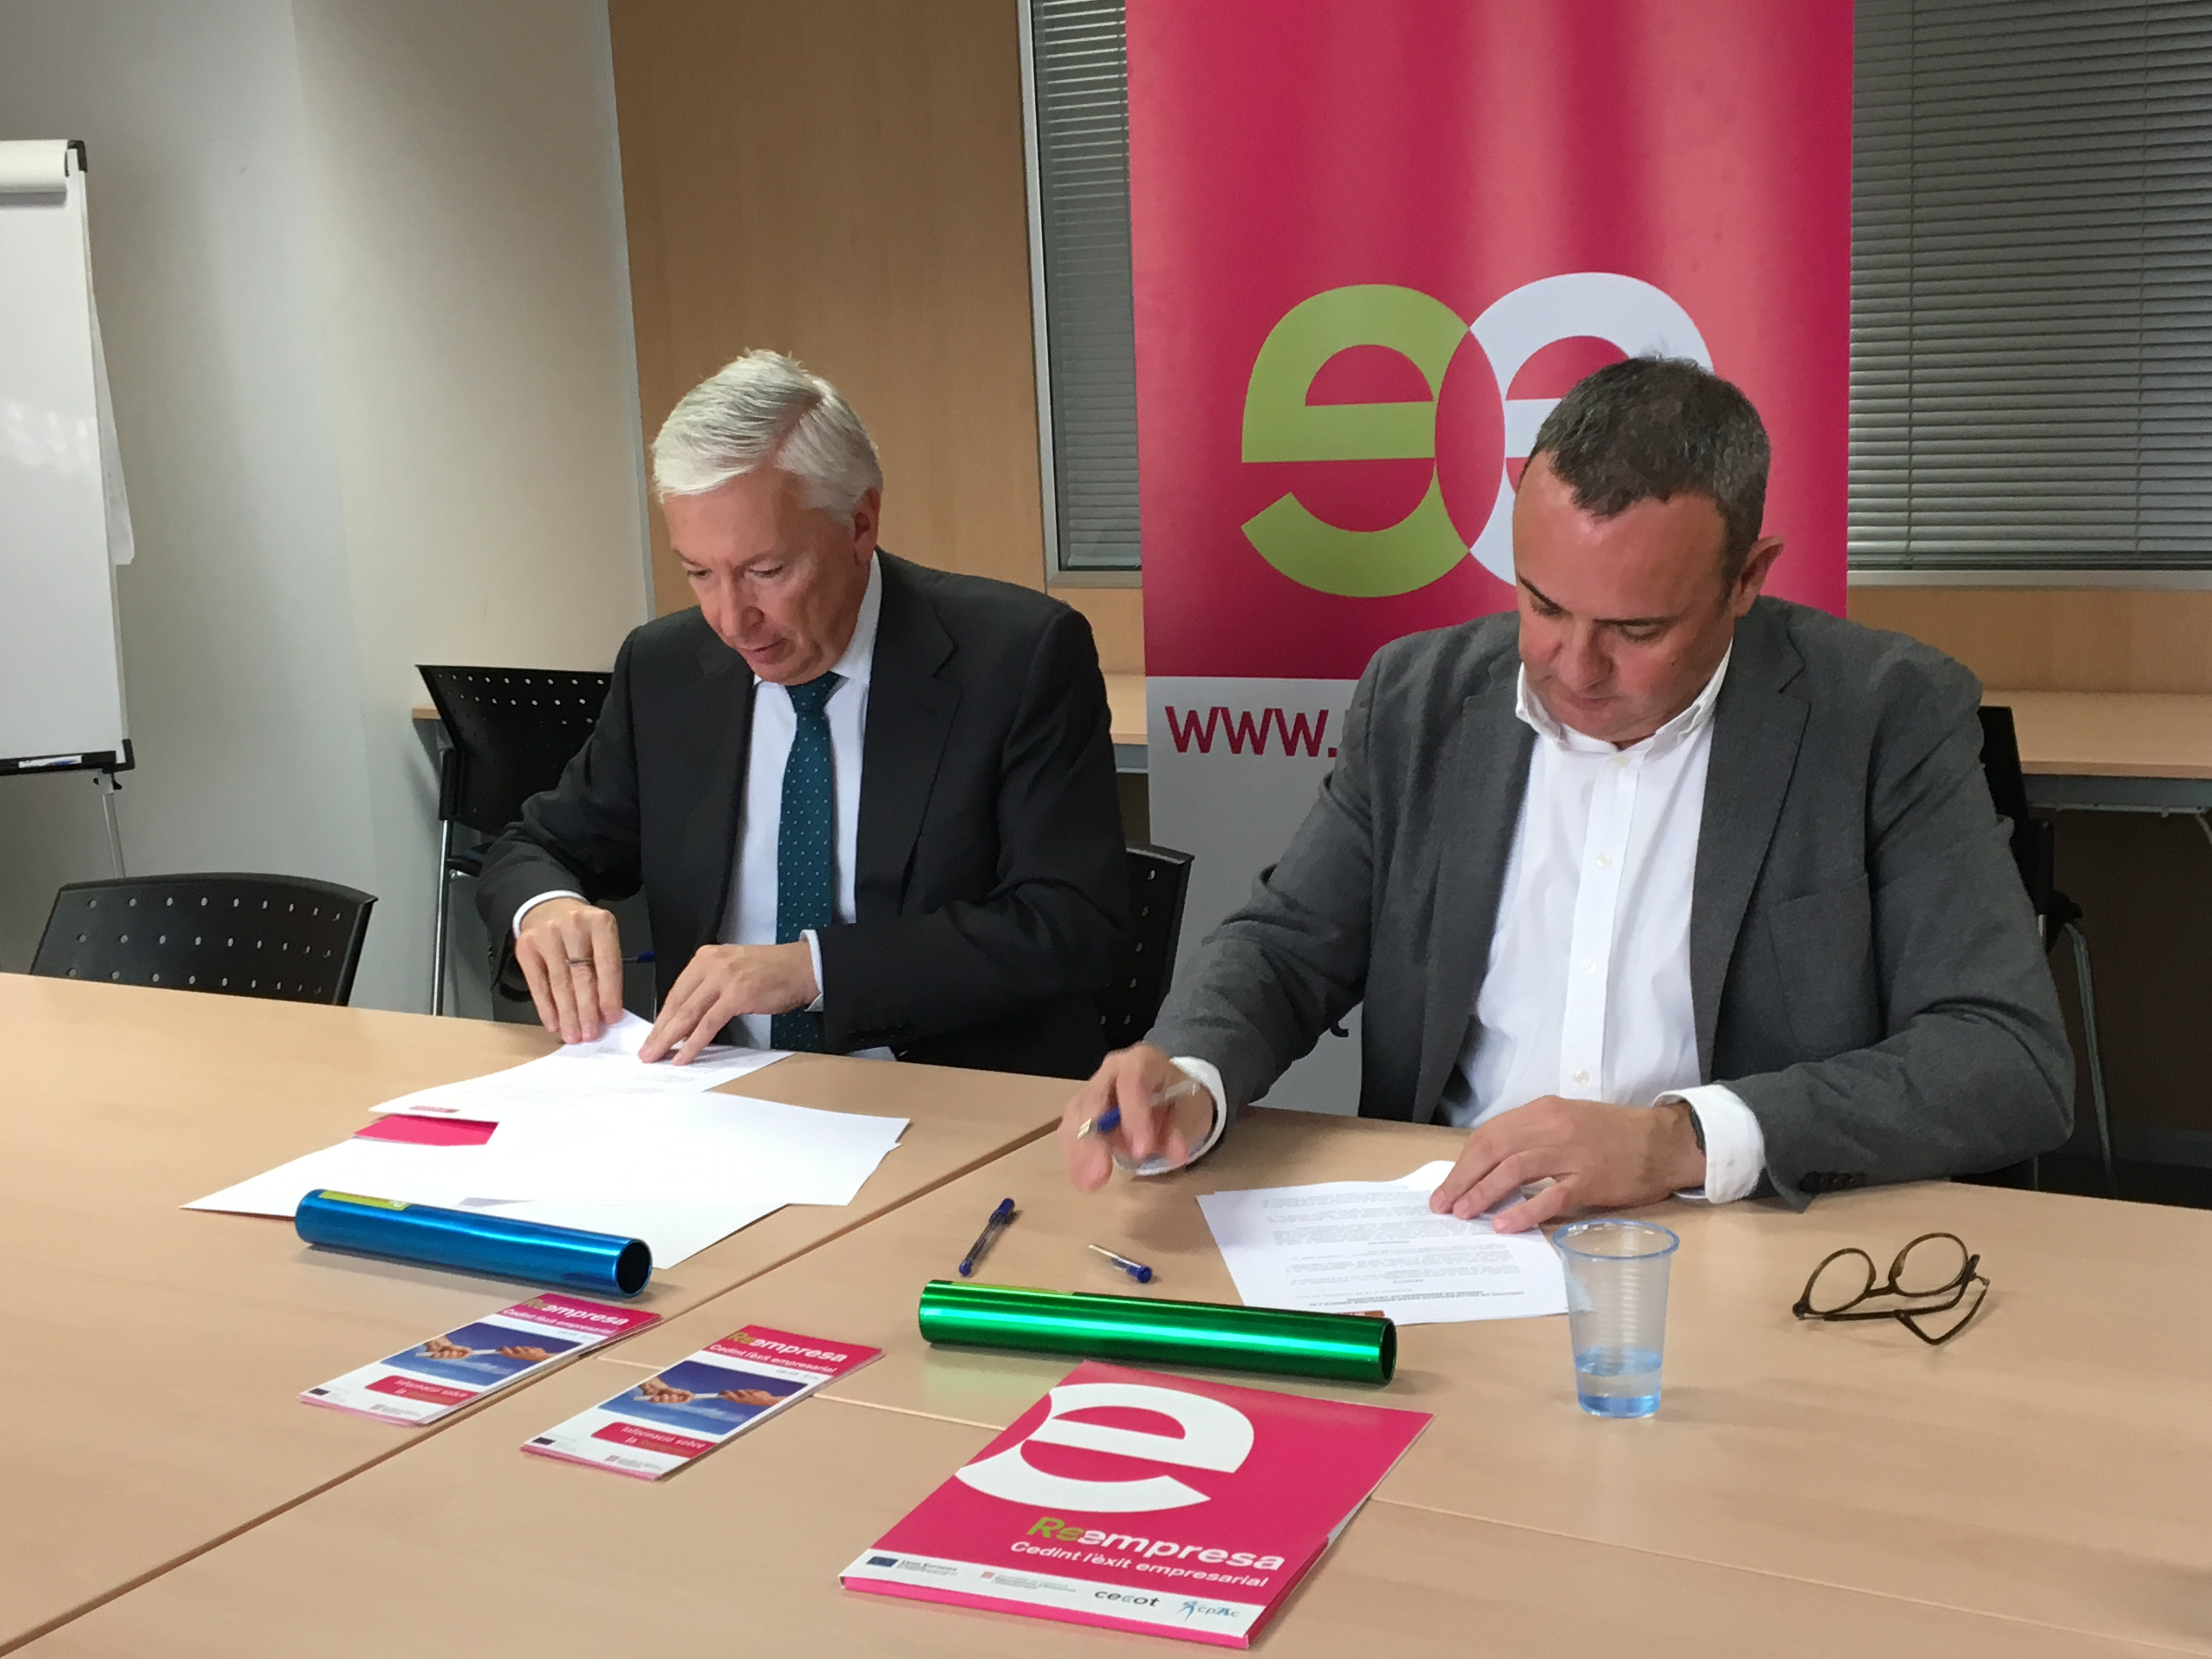 Barcelona Oberta and employer Cecot sign a collaboration agreement | Barcelona Oberta